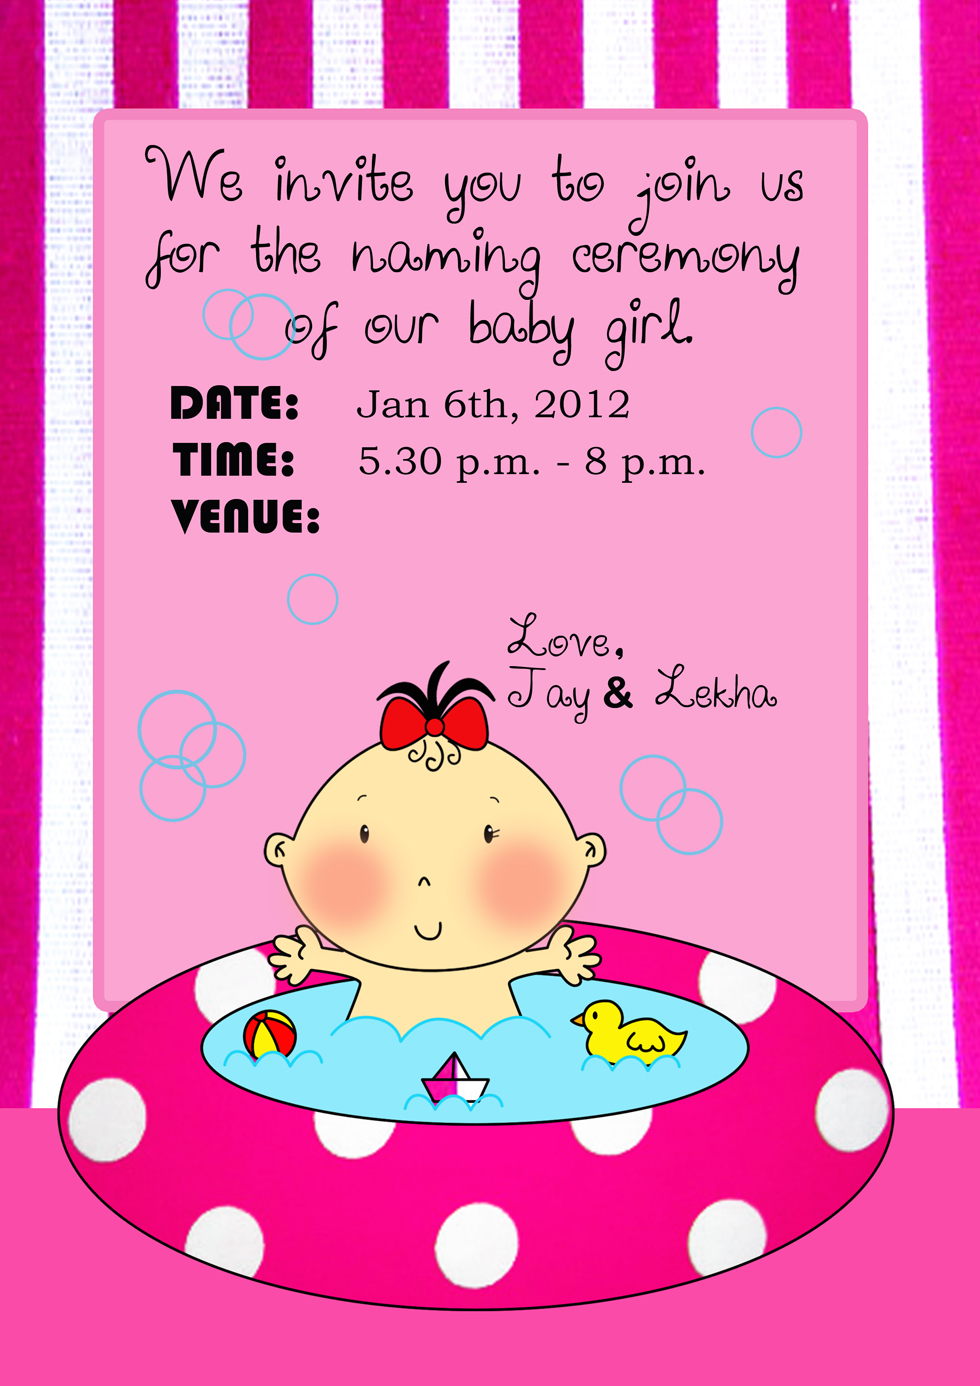 Another Naming Ceremony Invite :)